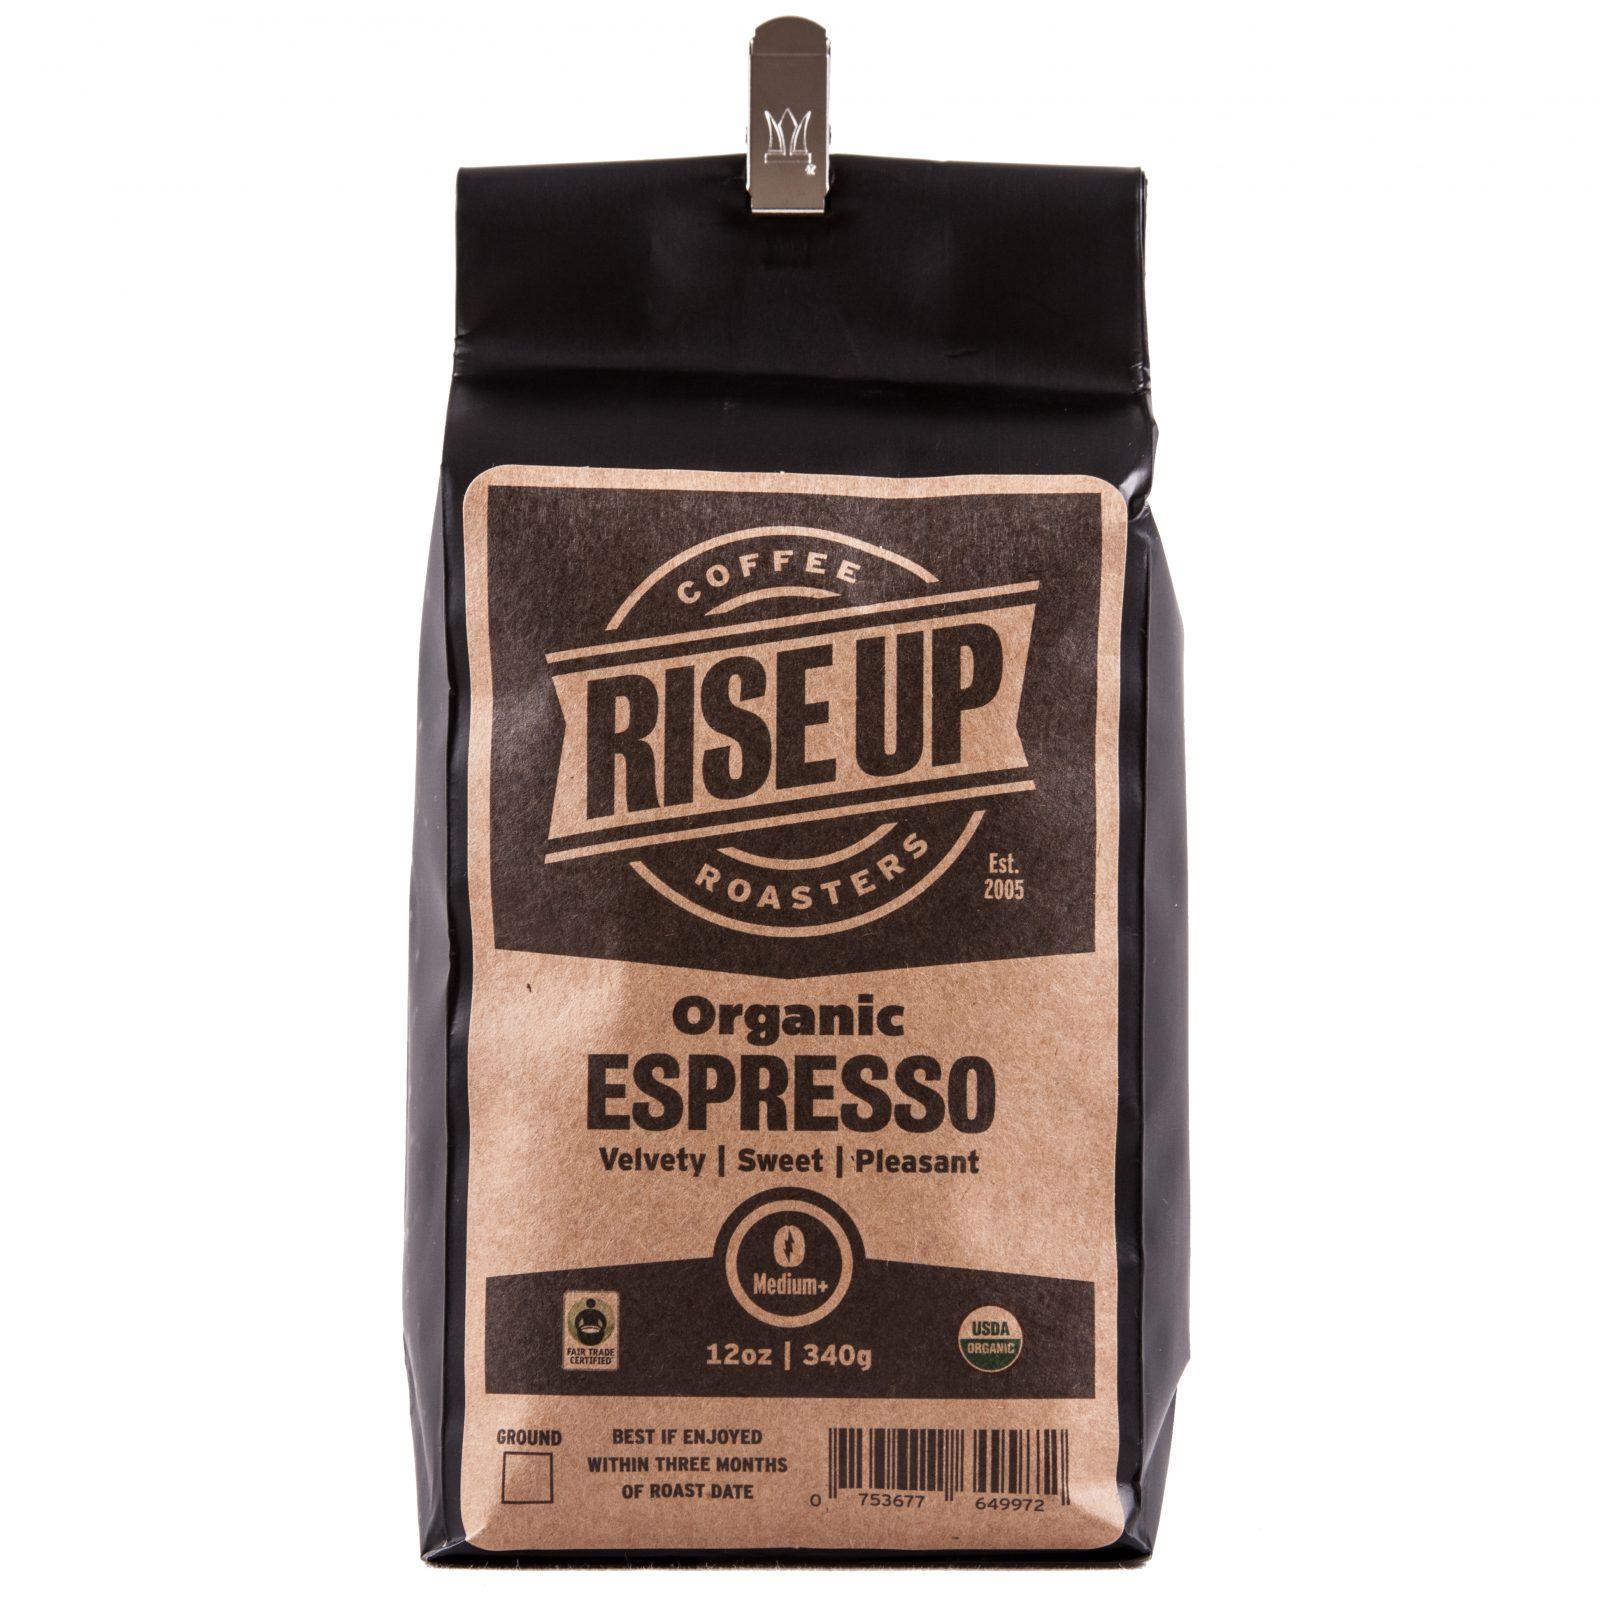 Coffee-12oz-Espresso-1600x1600.jpg